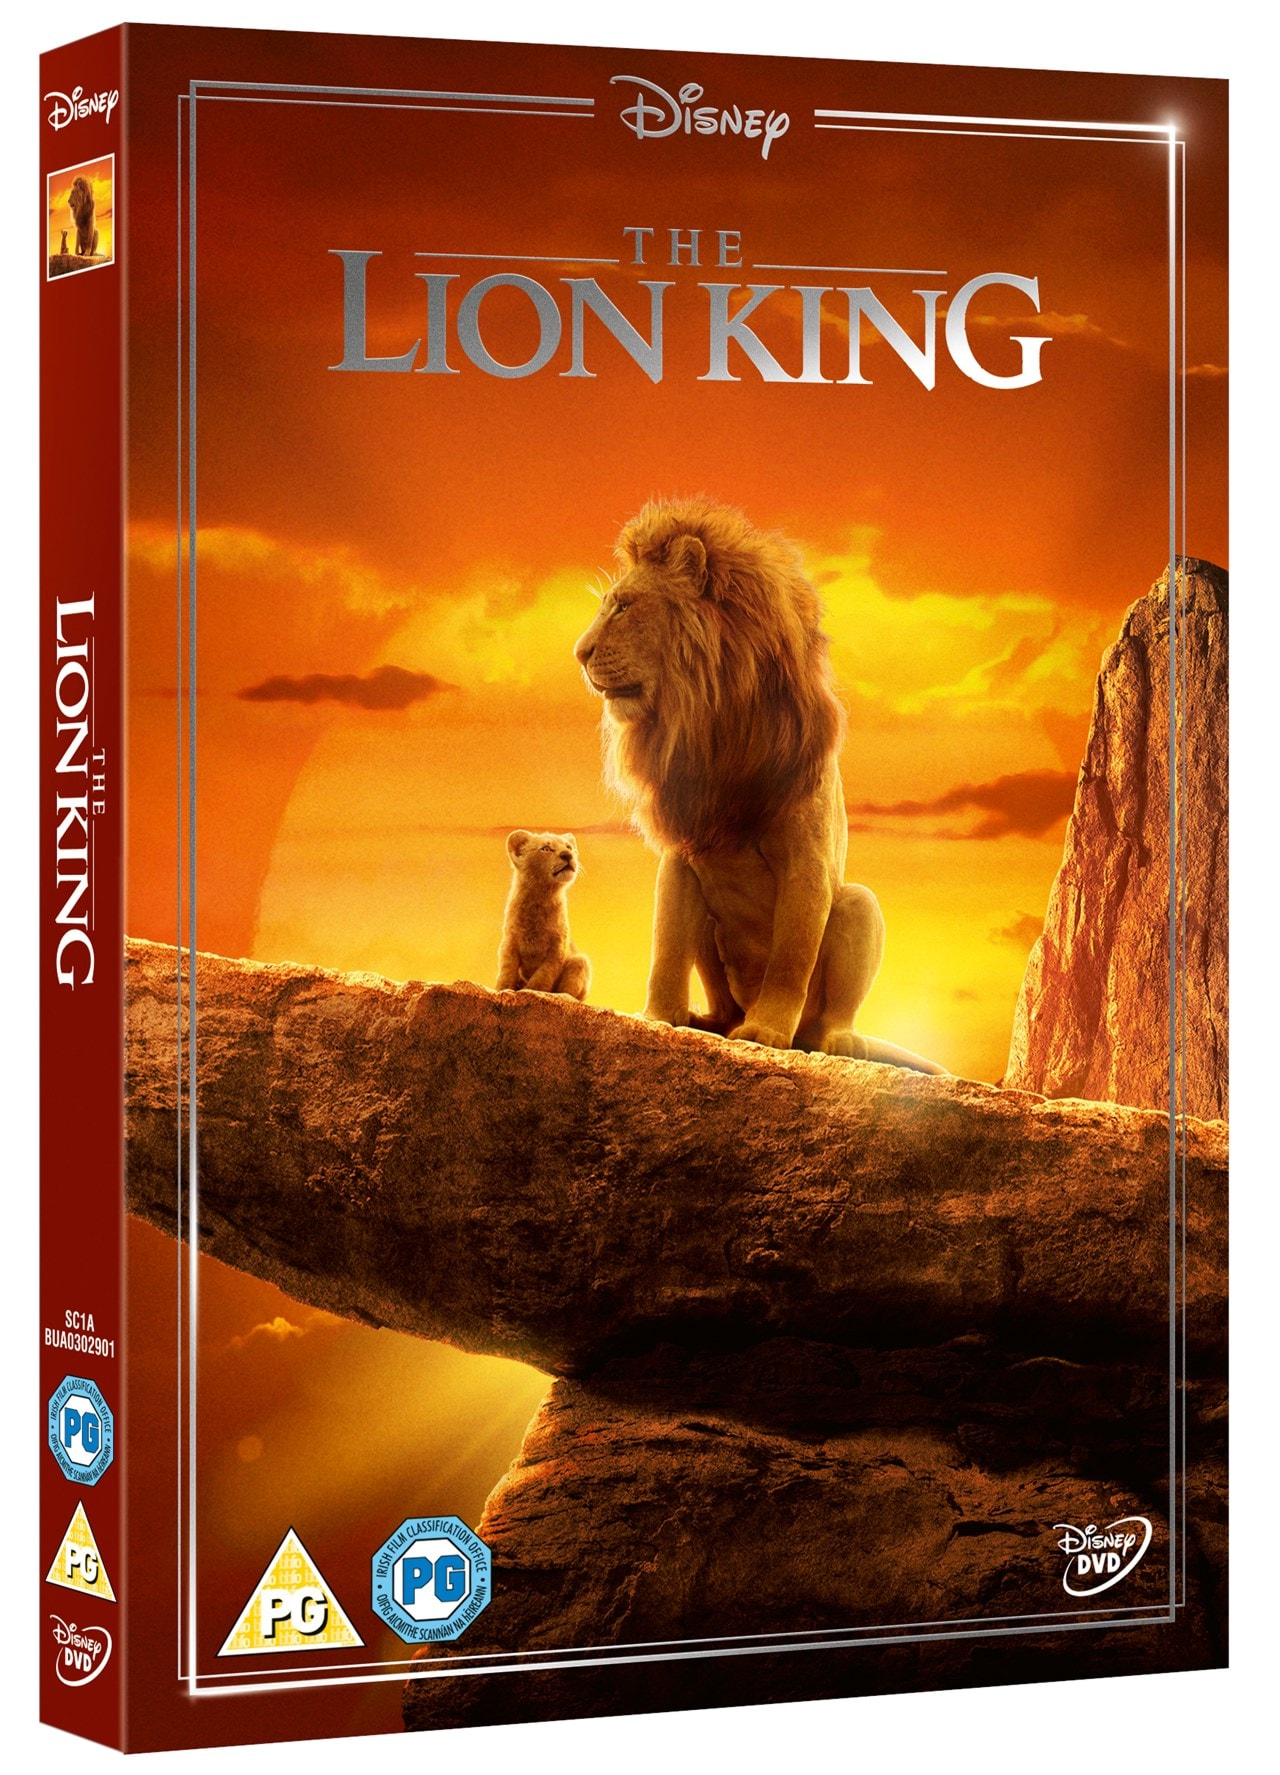 The Lion King - 2